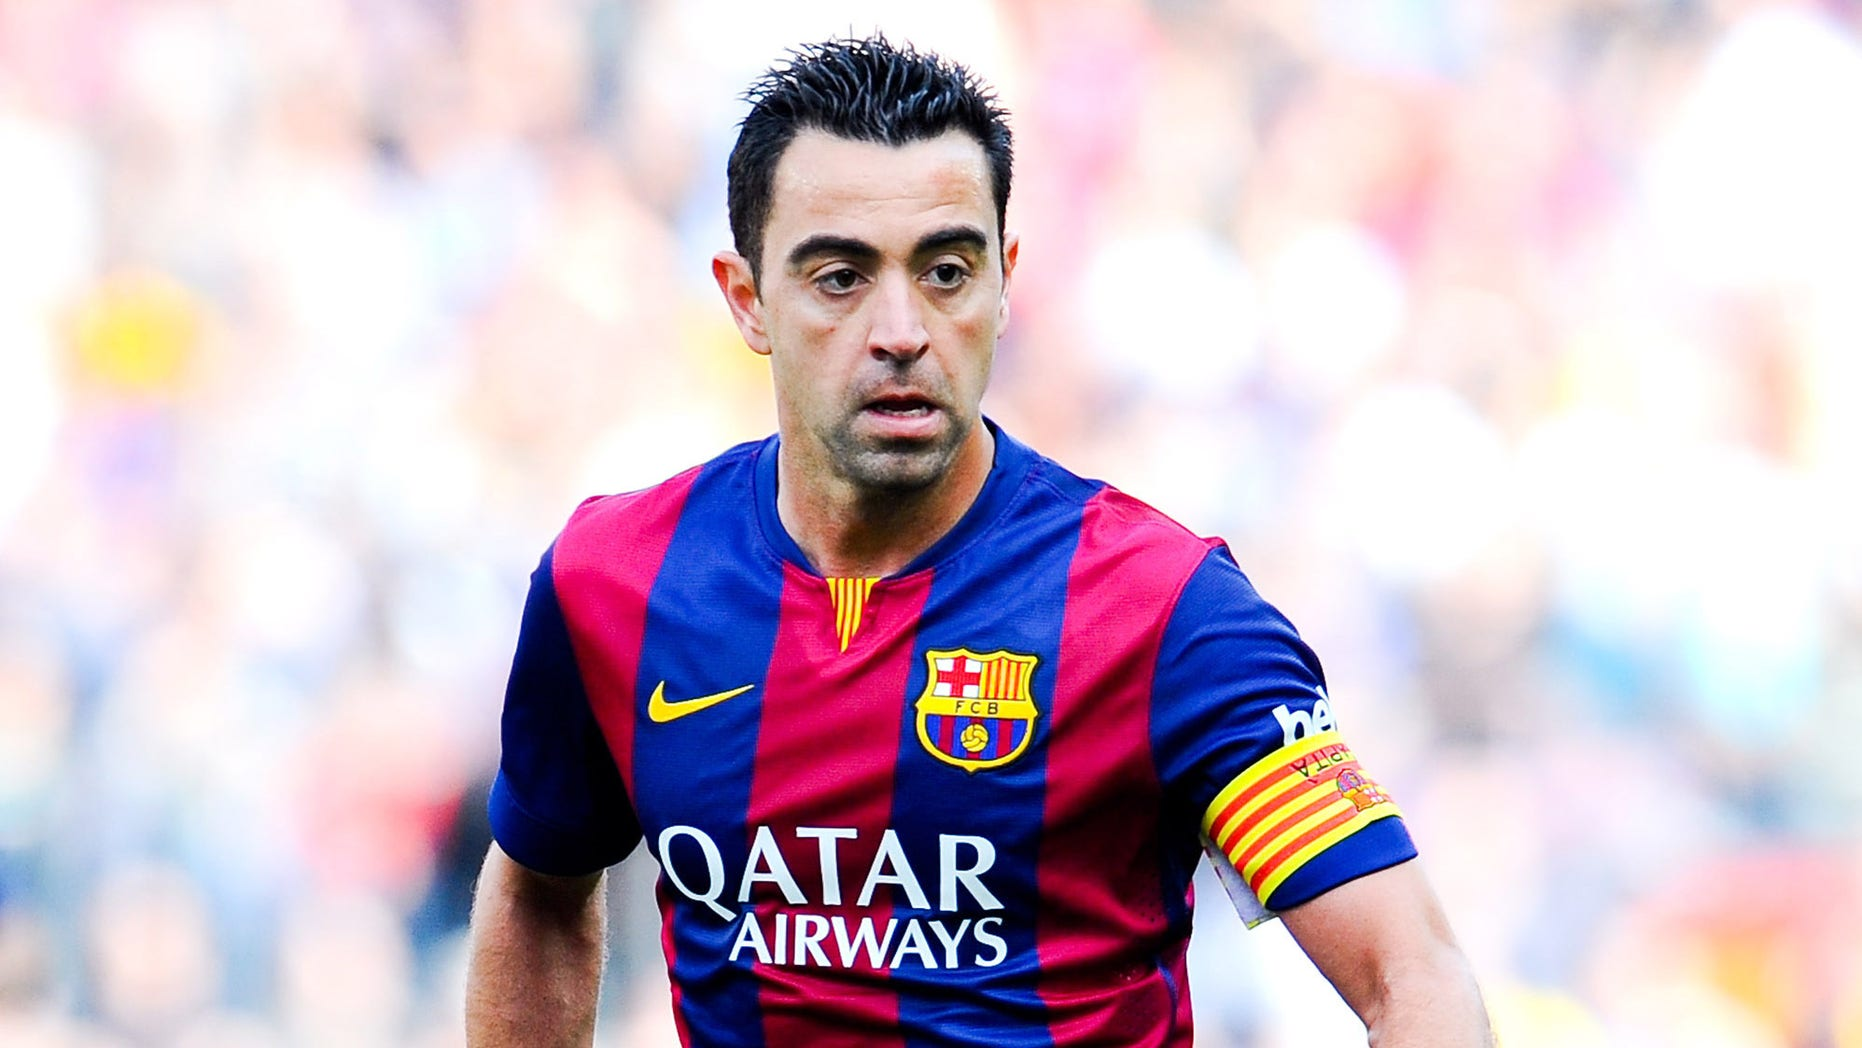 BARCELONA, SPAIN - APRIL 18:  Xavi Hernandez of FC Barcelona runs with the ball during the La Liga match between FC Barcelona and Valencia CF at Camp Nou on April 18, 2015 in Barcelona, Spain.  (Photo by David Ramos/Getty Images)